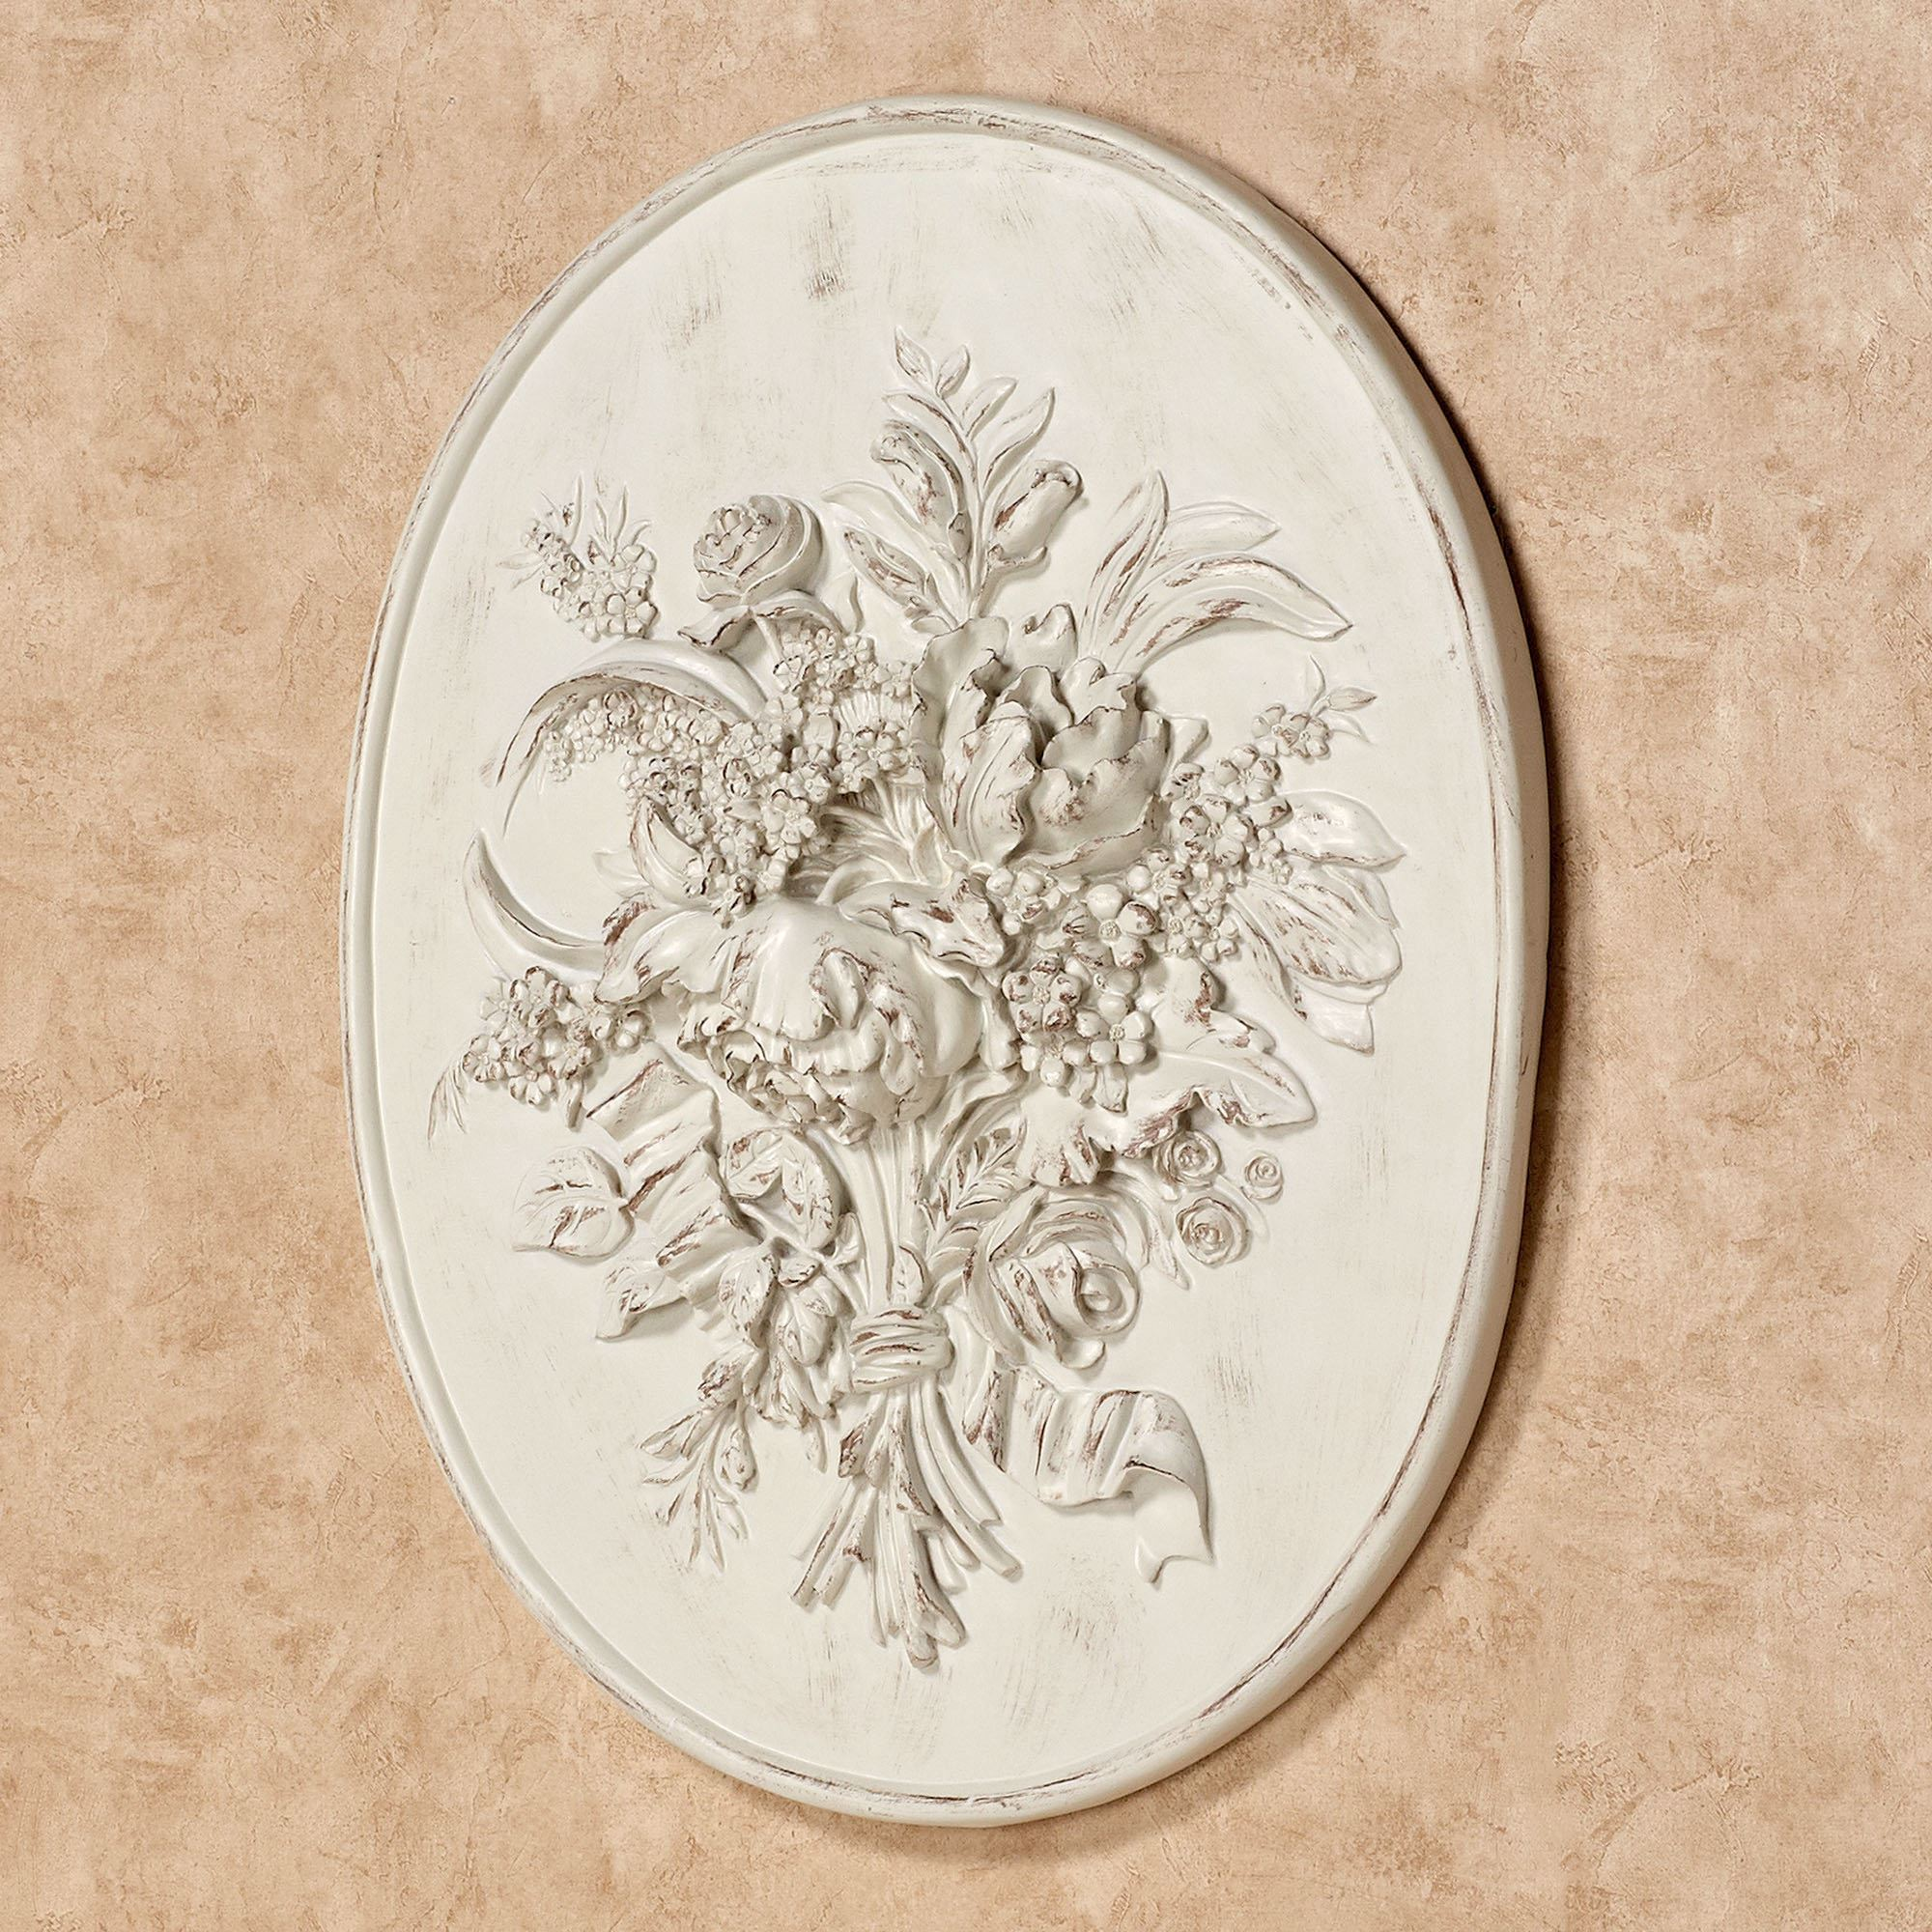 Astounding wall plaques with antique pattern design for wall decorating home ideas